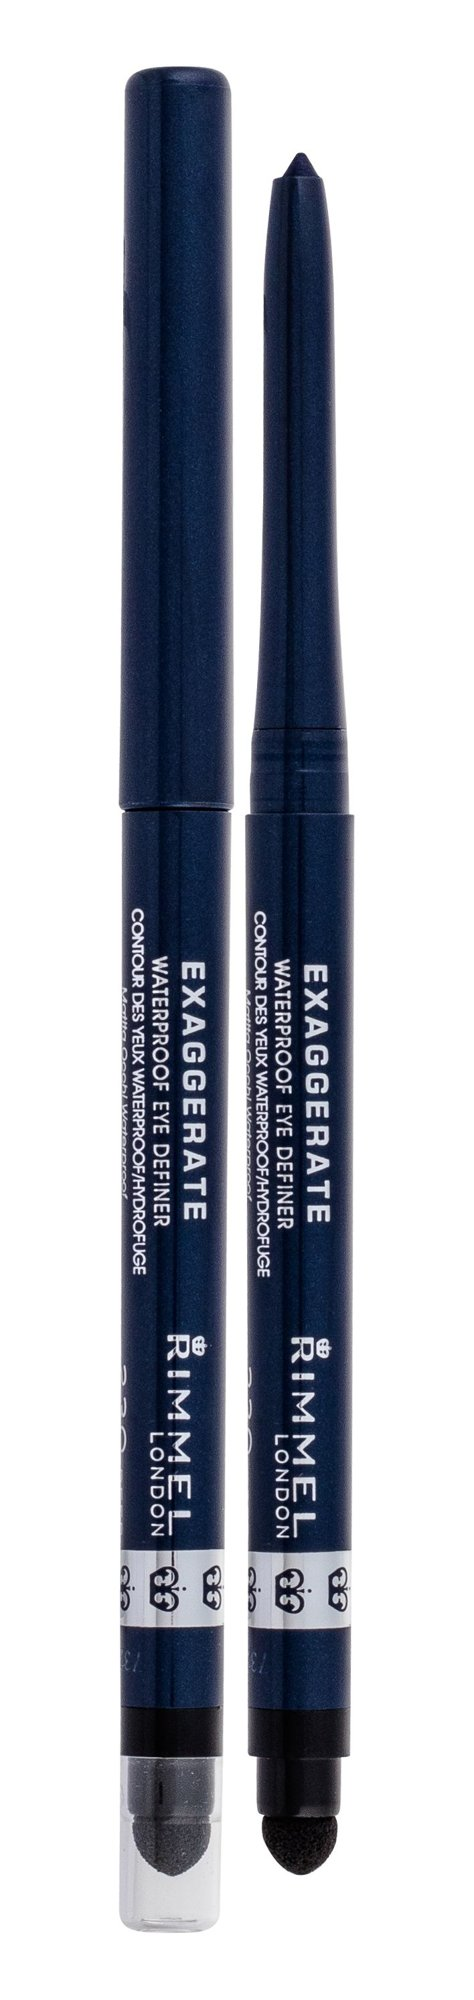 Akių šešėlis Rimmel London Exaggerate Waterproof Eye Definer